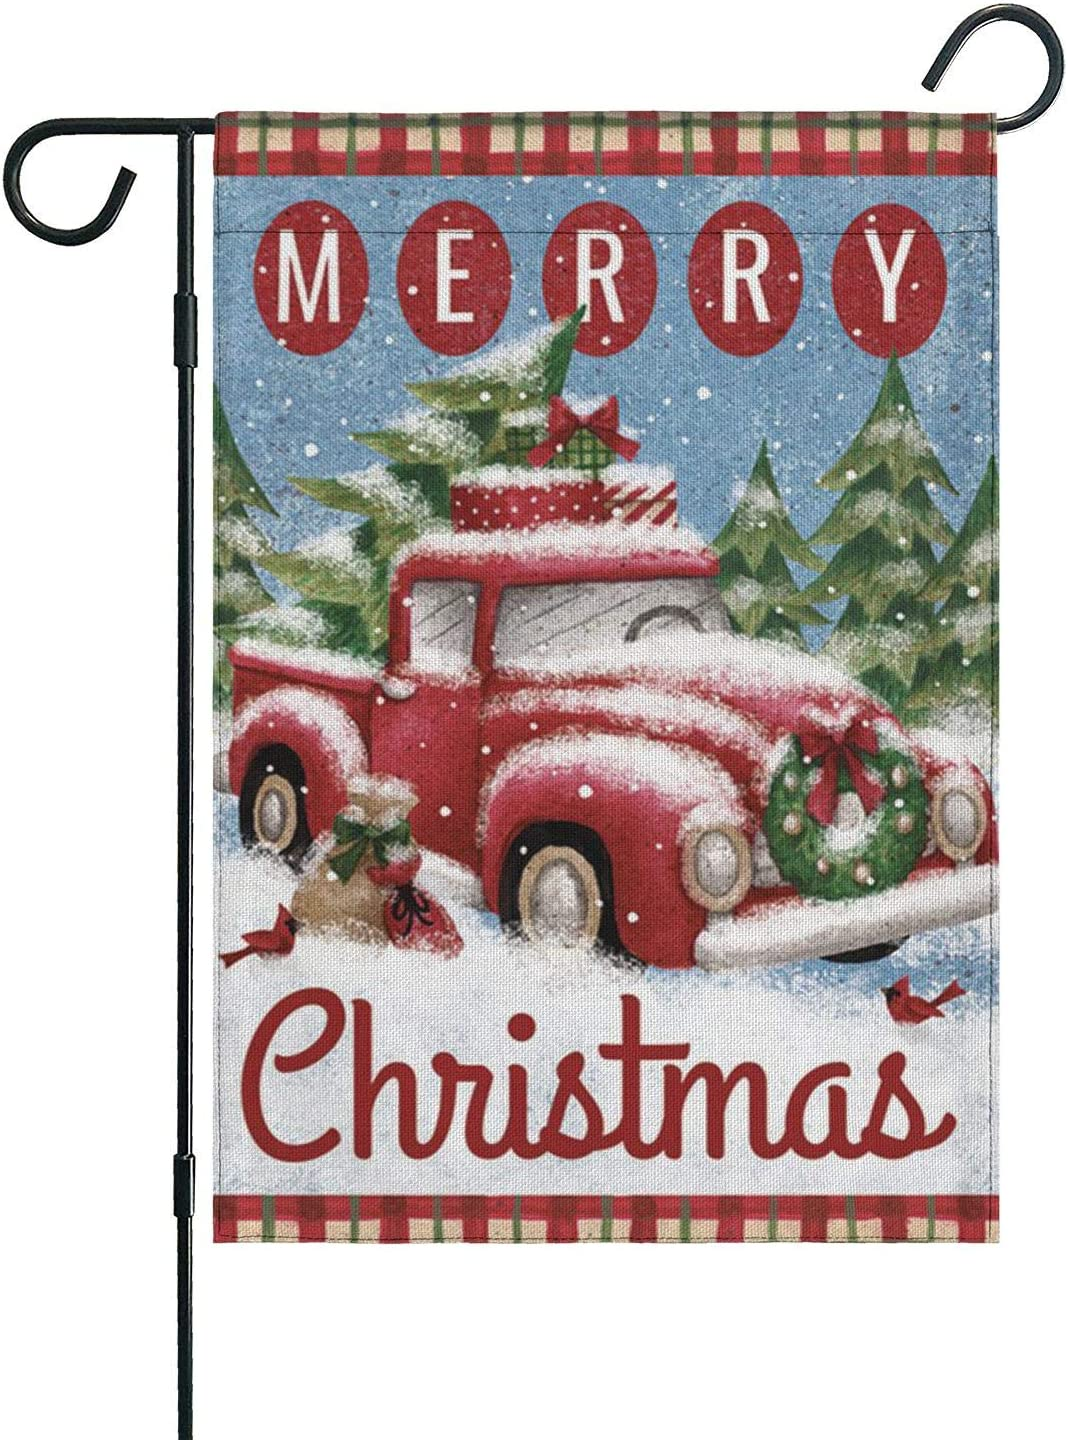 Topper-E Merry Christmas Garden Flag, Double Sided Home Decorative Nativity Xmas Rustic Winter Snowman Yard Sign Flag Banner, Vintage New Year Seasonal Outdoor Burlap Flag 12.5 X 18 Holiday